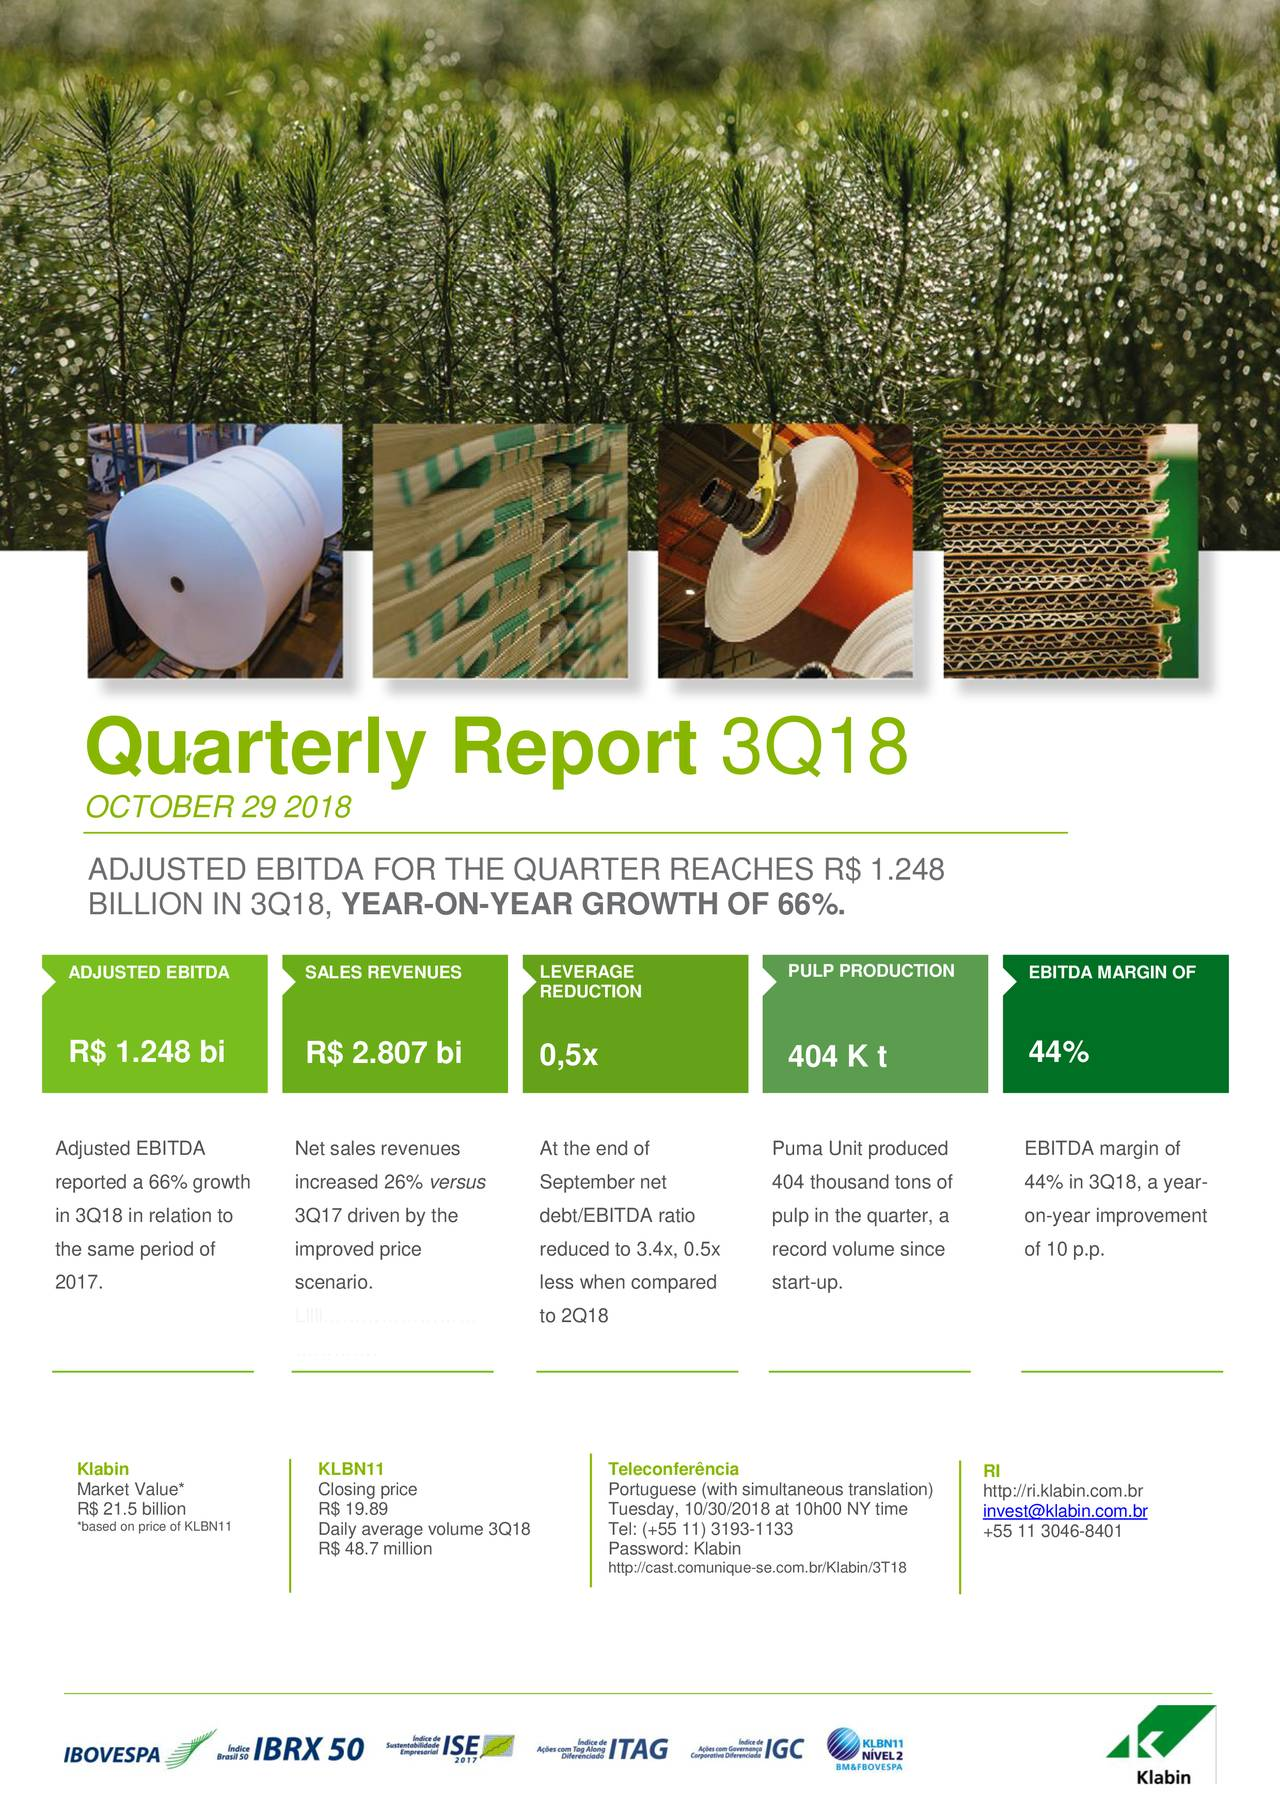 OCTOBER 29 2018 ADJUSTED EBITDA FOR THE QUARTER REACHES R$ 1.248 BILLION IN 3Q18, YEAR-ON-YEAR GROWTH OF 66%. ADJUSTED EBITDA SALES REVENUES LEVERAGE PULP PRODUCTION EBITDA MARGIN OF REDUCTION R$ 1.248 bi R$ 2.807 bi 0,5x 404 K t 44% Adjusted EBITDA Net sales revenues At the end of Puma Unit produced EBITDA margin of reported a 66% growth increased 26% versus September net 404 thousand tons of 44% in 3Q18, a year- in 3Q18 in relation to 3Q17 driven by the debt/EBITDA ratio pulp in the quarter, a on-year improvement the same period of improved price reduced to 3.4x, 0.5x record volume since of 10 p.p. 2017. scenario. less when compared start-up. nnnnnnnnnnnn……… …………………… Lllll…………………… to 2Q18 …………………… ………………………… nnnn …………. nn d .n Klabin KLBN11 Teleconferência RI Market Value* Closing price Portuguese (with simultaneous transhttp://ri.klabin.com.br R$ 21.5 billion R$ 19.89 Tuesday, 10/30/2018 at 10h00 NY timinvest@klabin.com.br *based on price of KLBNDaily average volume 3Q18 Tel: (+55 11) 3193-1133 +55 11 3046-8401 R$ 48.7 million Password: Klabin http://cast.comunique-se.com.br/Klabin/3T18